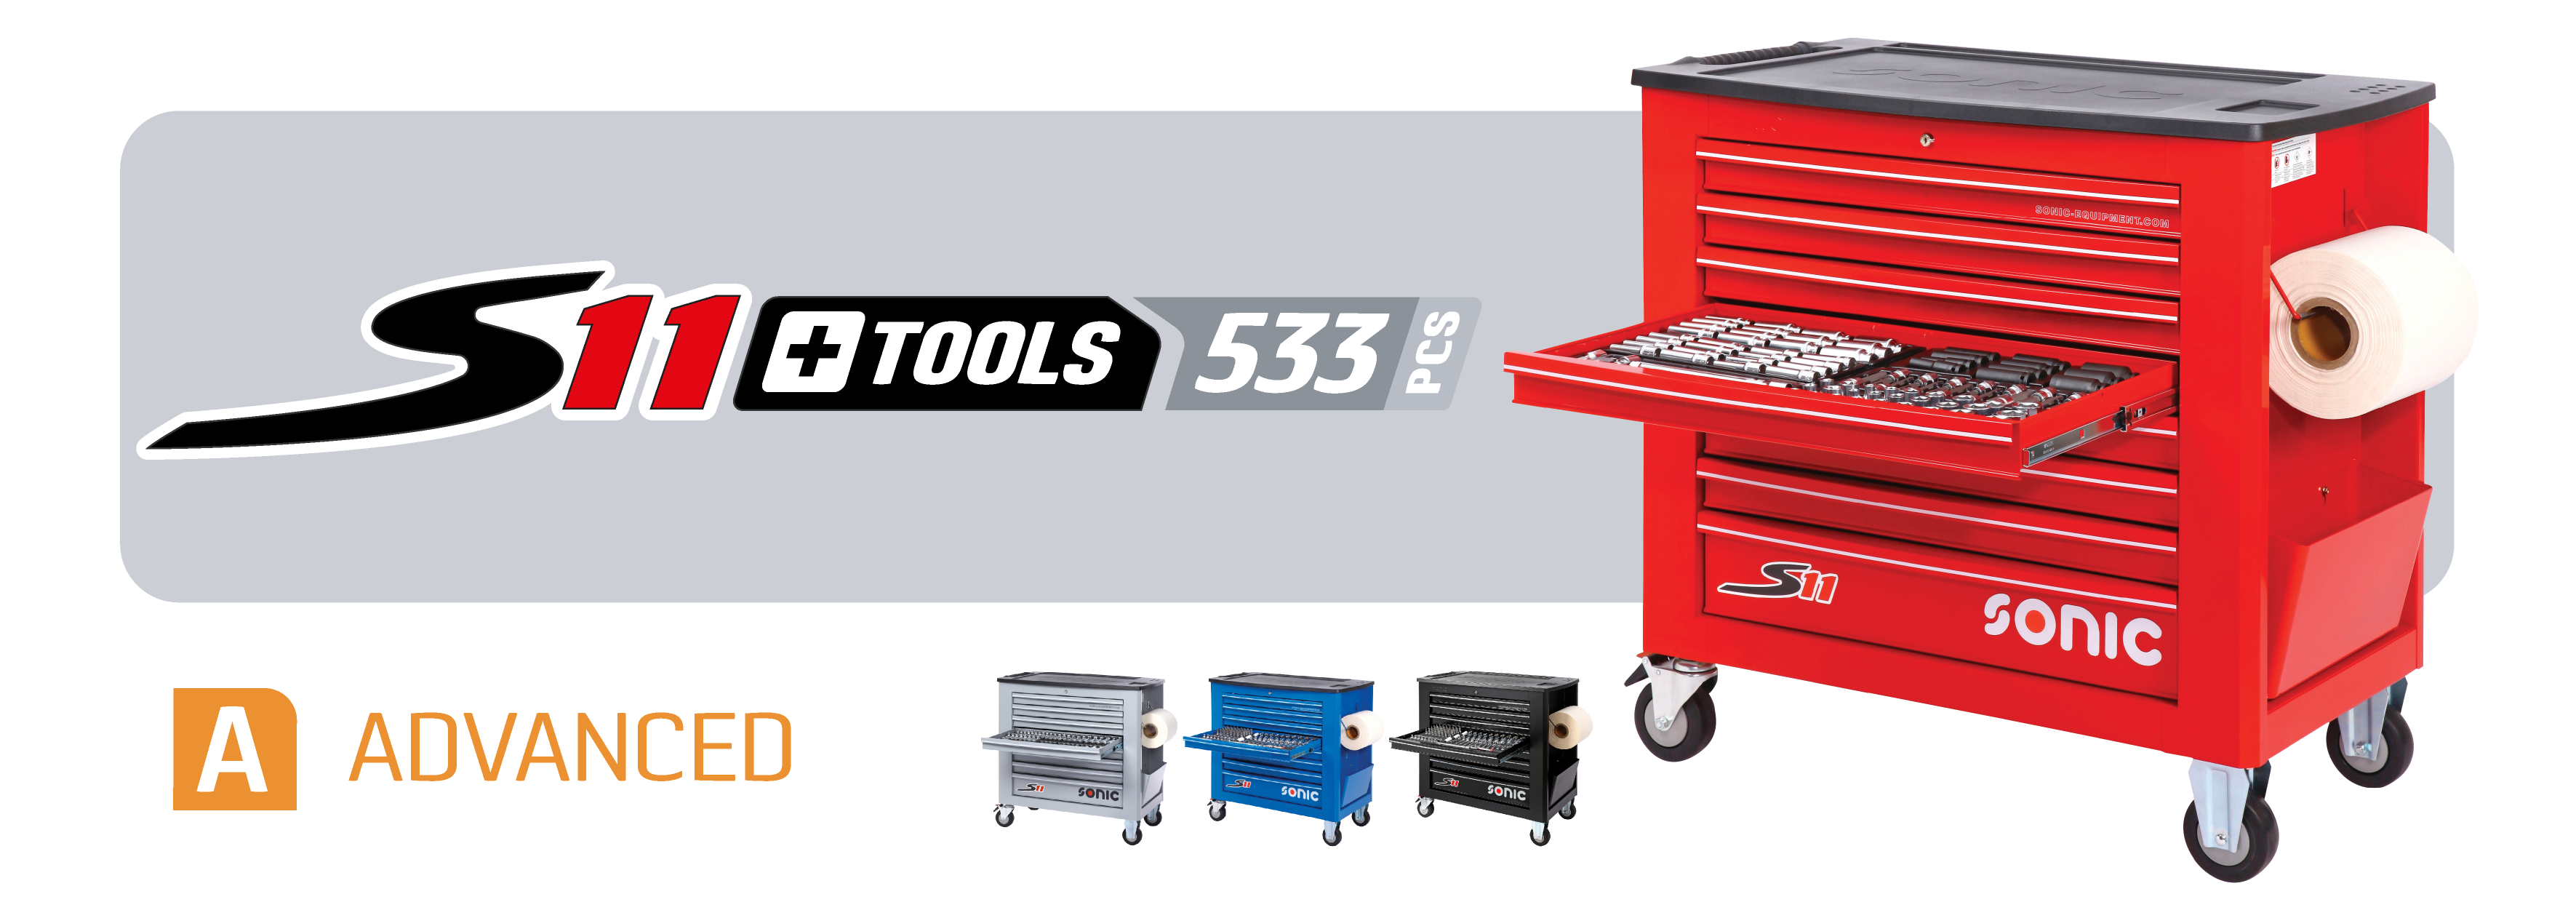 S11 toolbox with tools